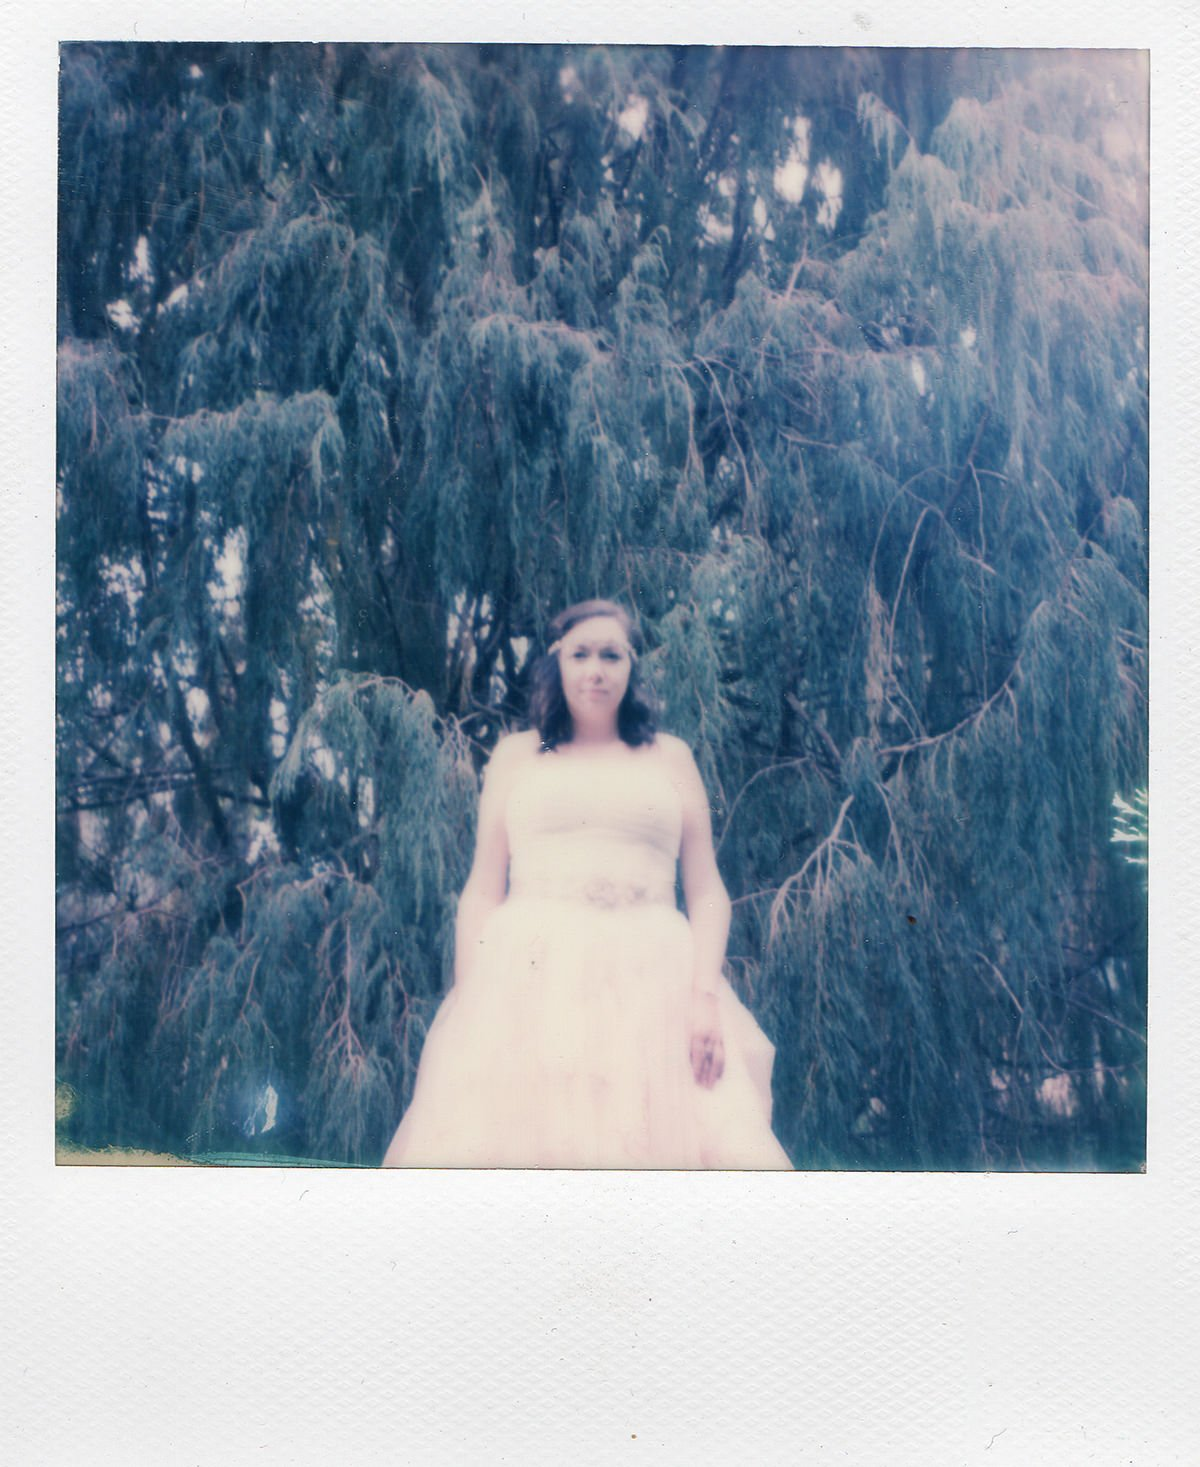 Impossible-Project-Polaroid-Film-Artistic-Quirky-Wedding-Photography-009